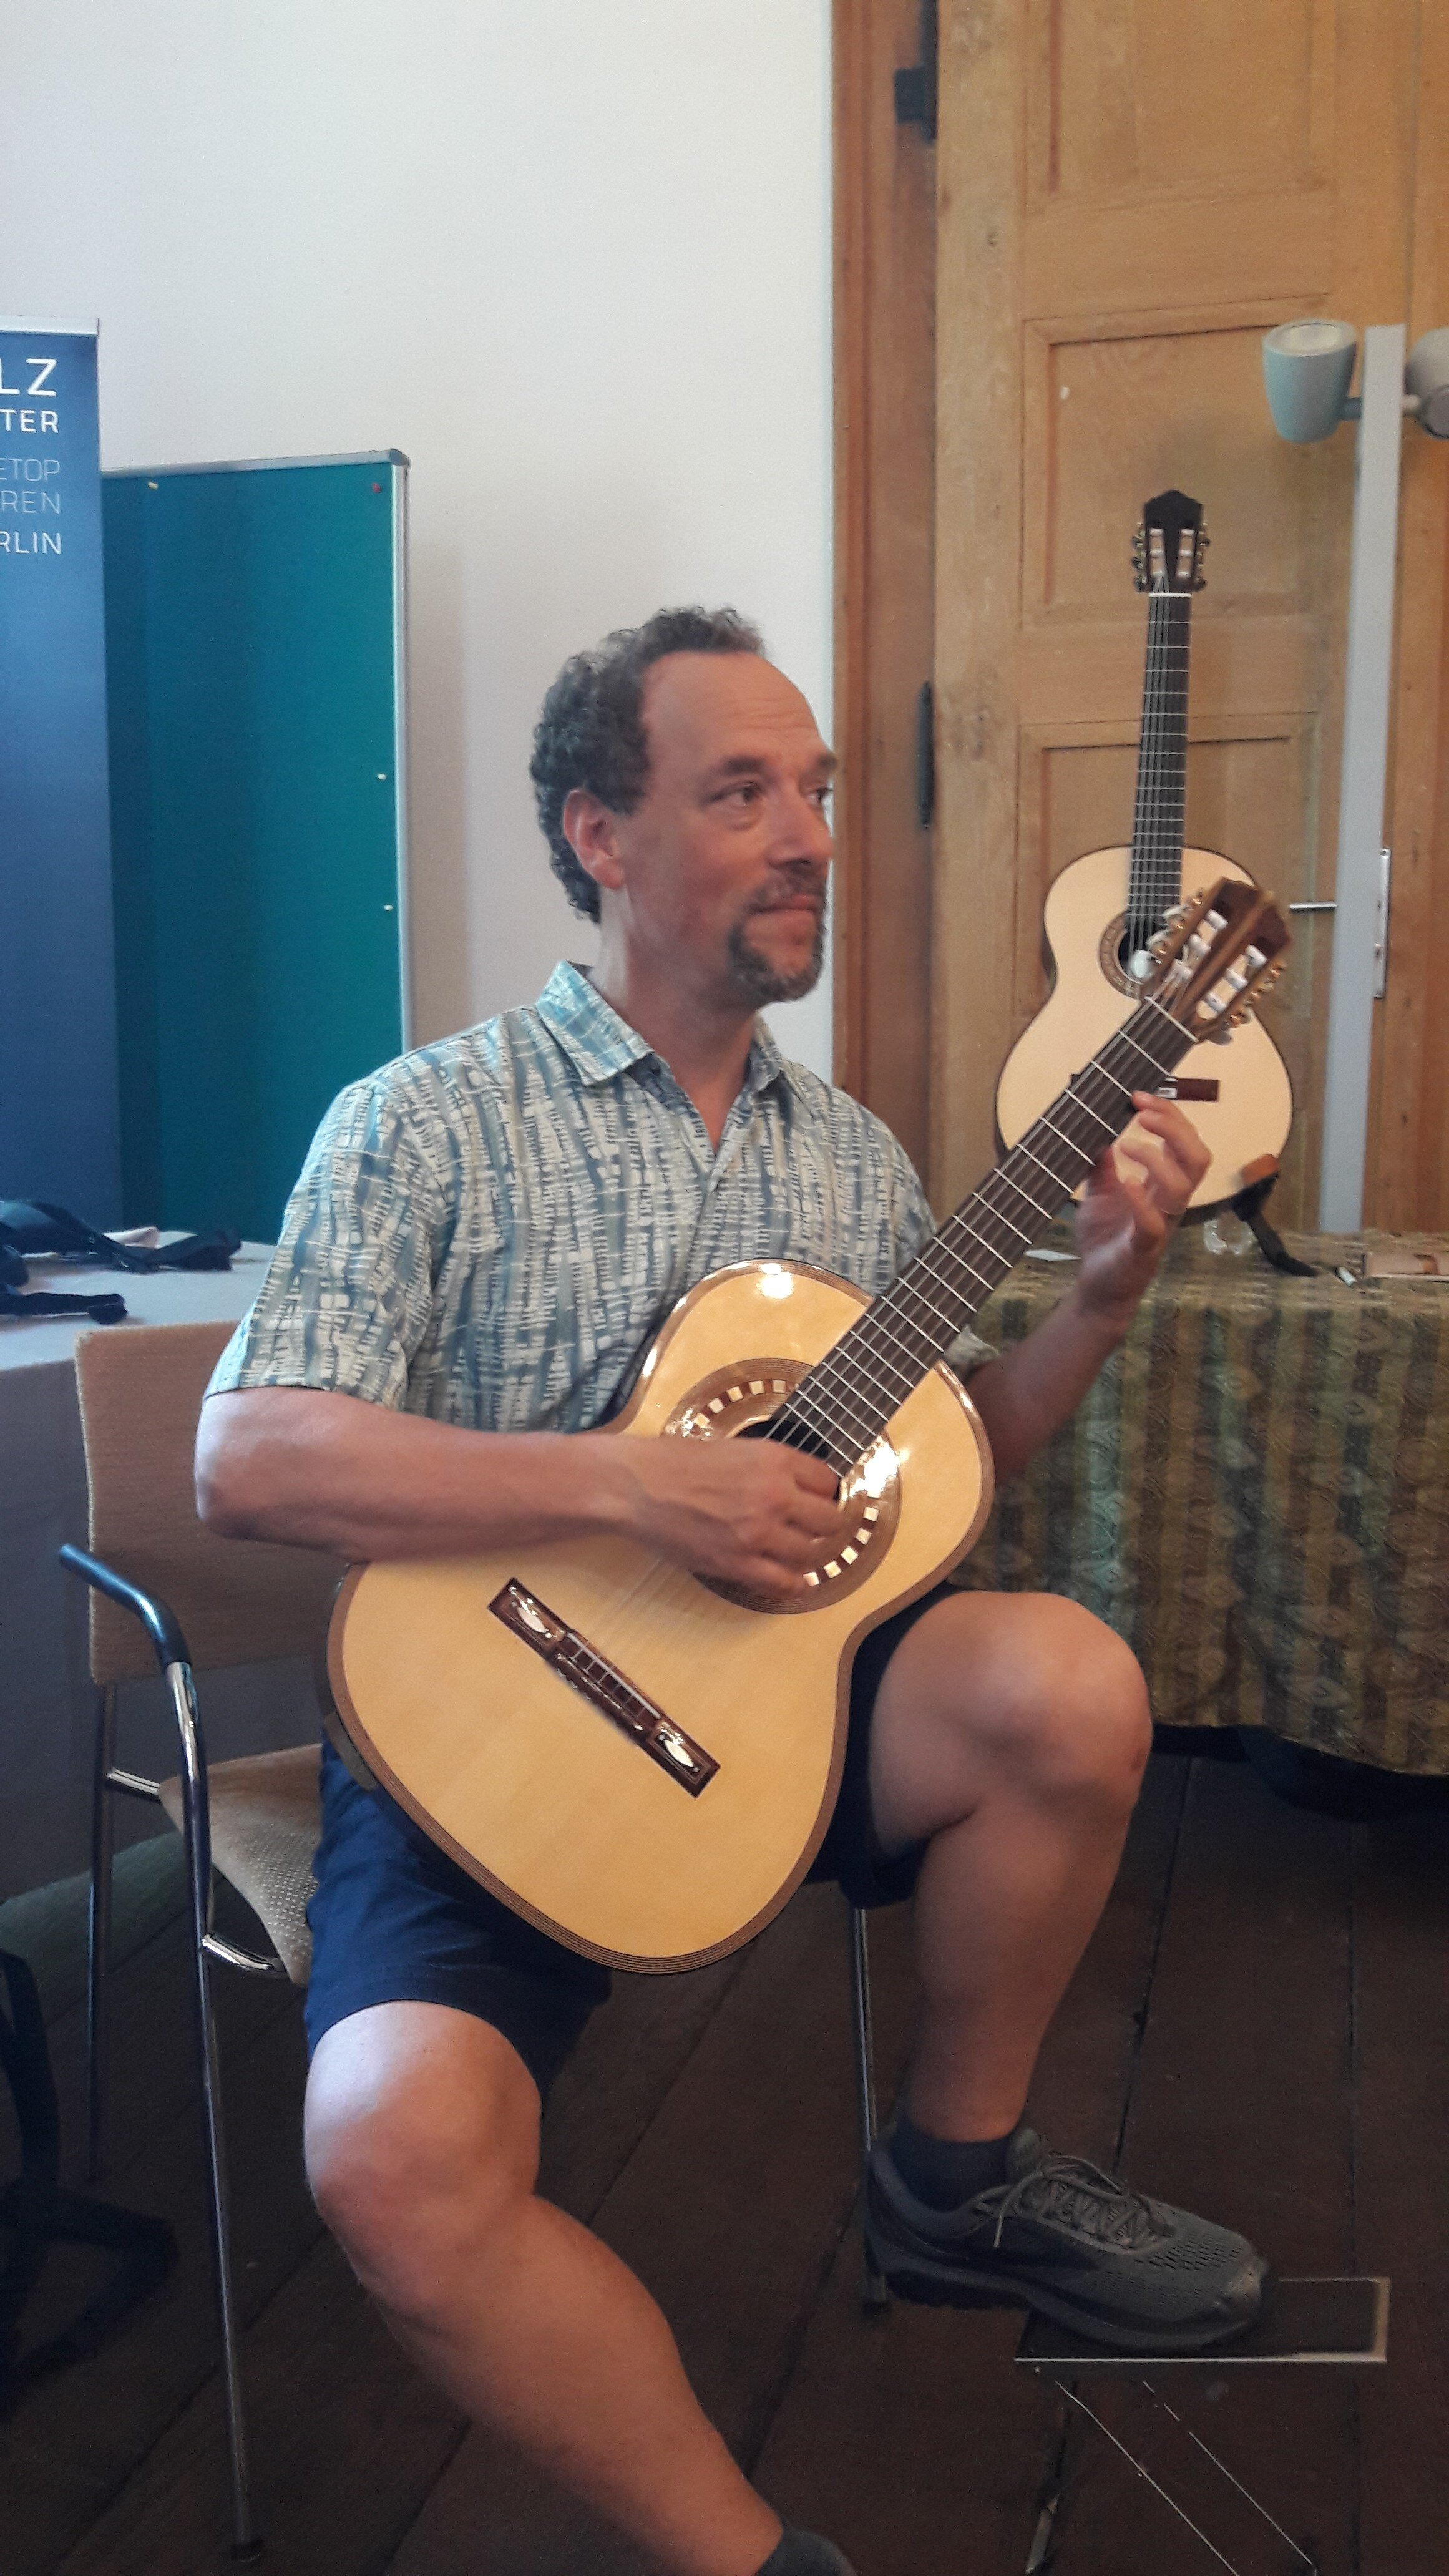 """Bill Kanengiser from the Los Angeles guitar Quartet playing Anniversary Den Toom luthier guitar """"Lucy"""" Iserlohn, Germany"""